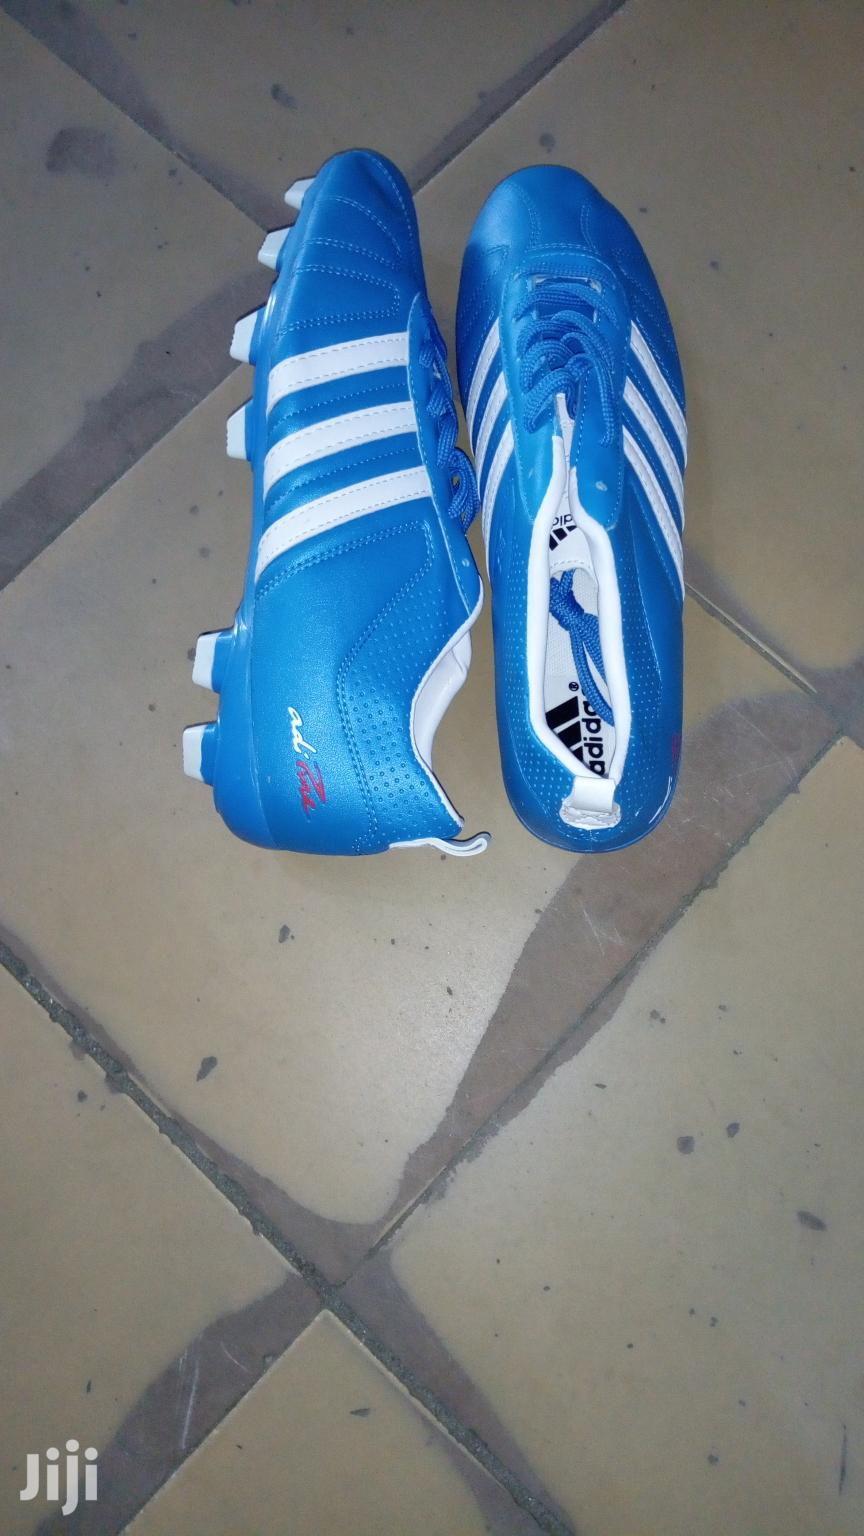 Original Adidas Football Boot | Shoes for sale in Ikeja, Lagos State, Nigeria